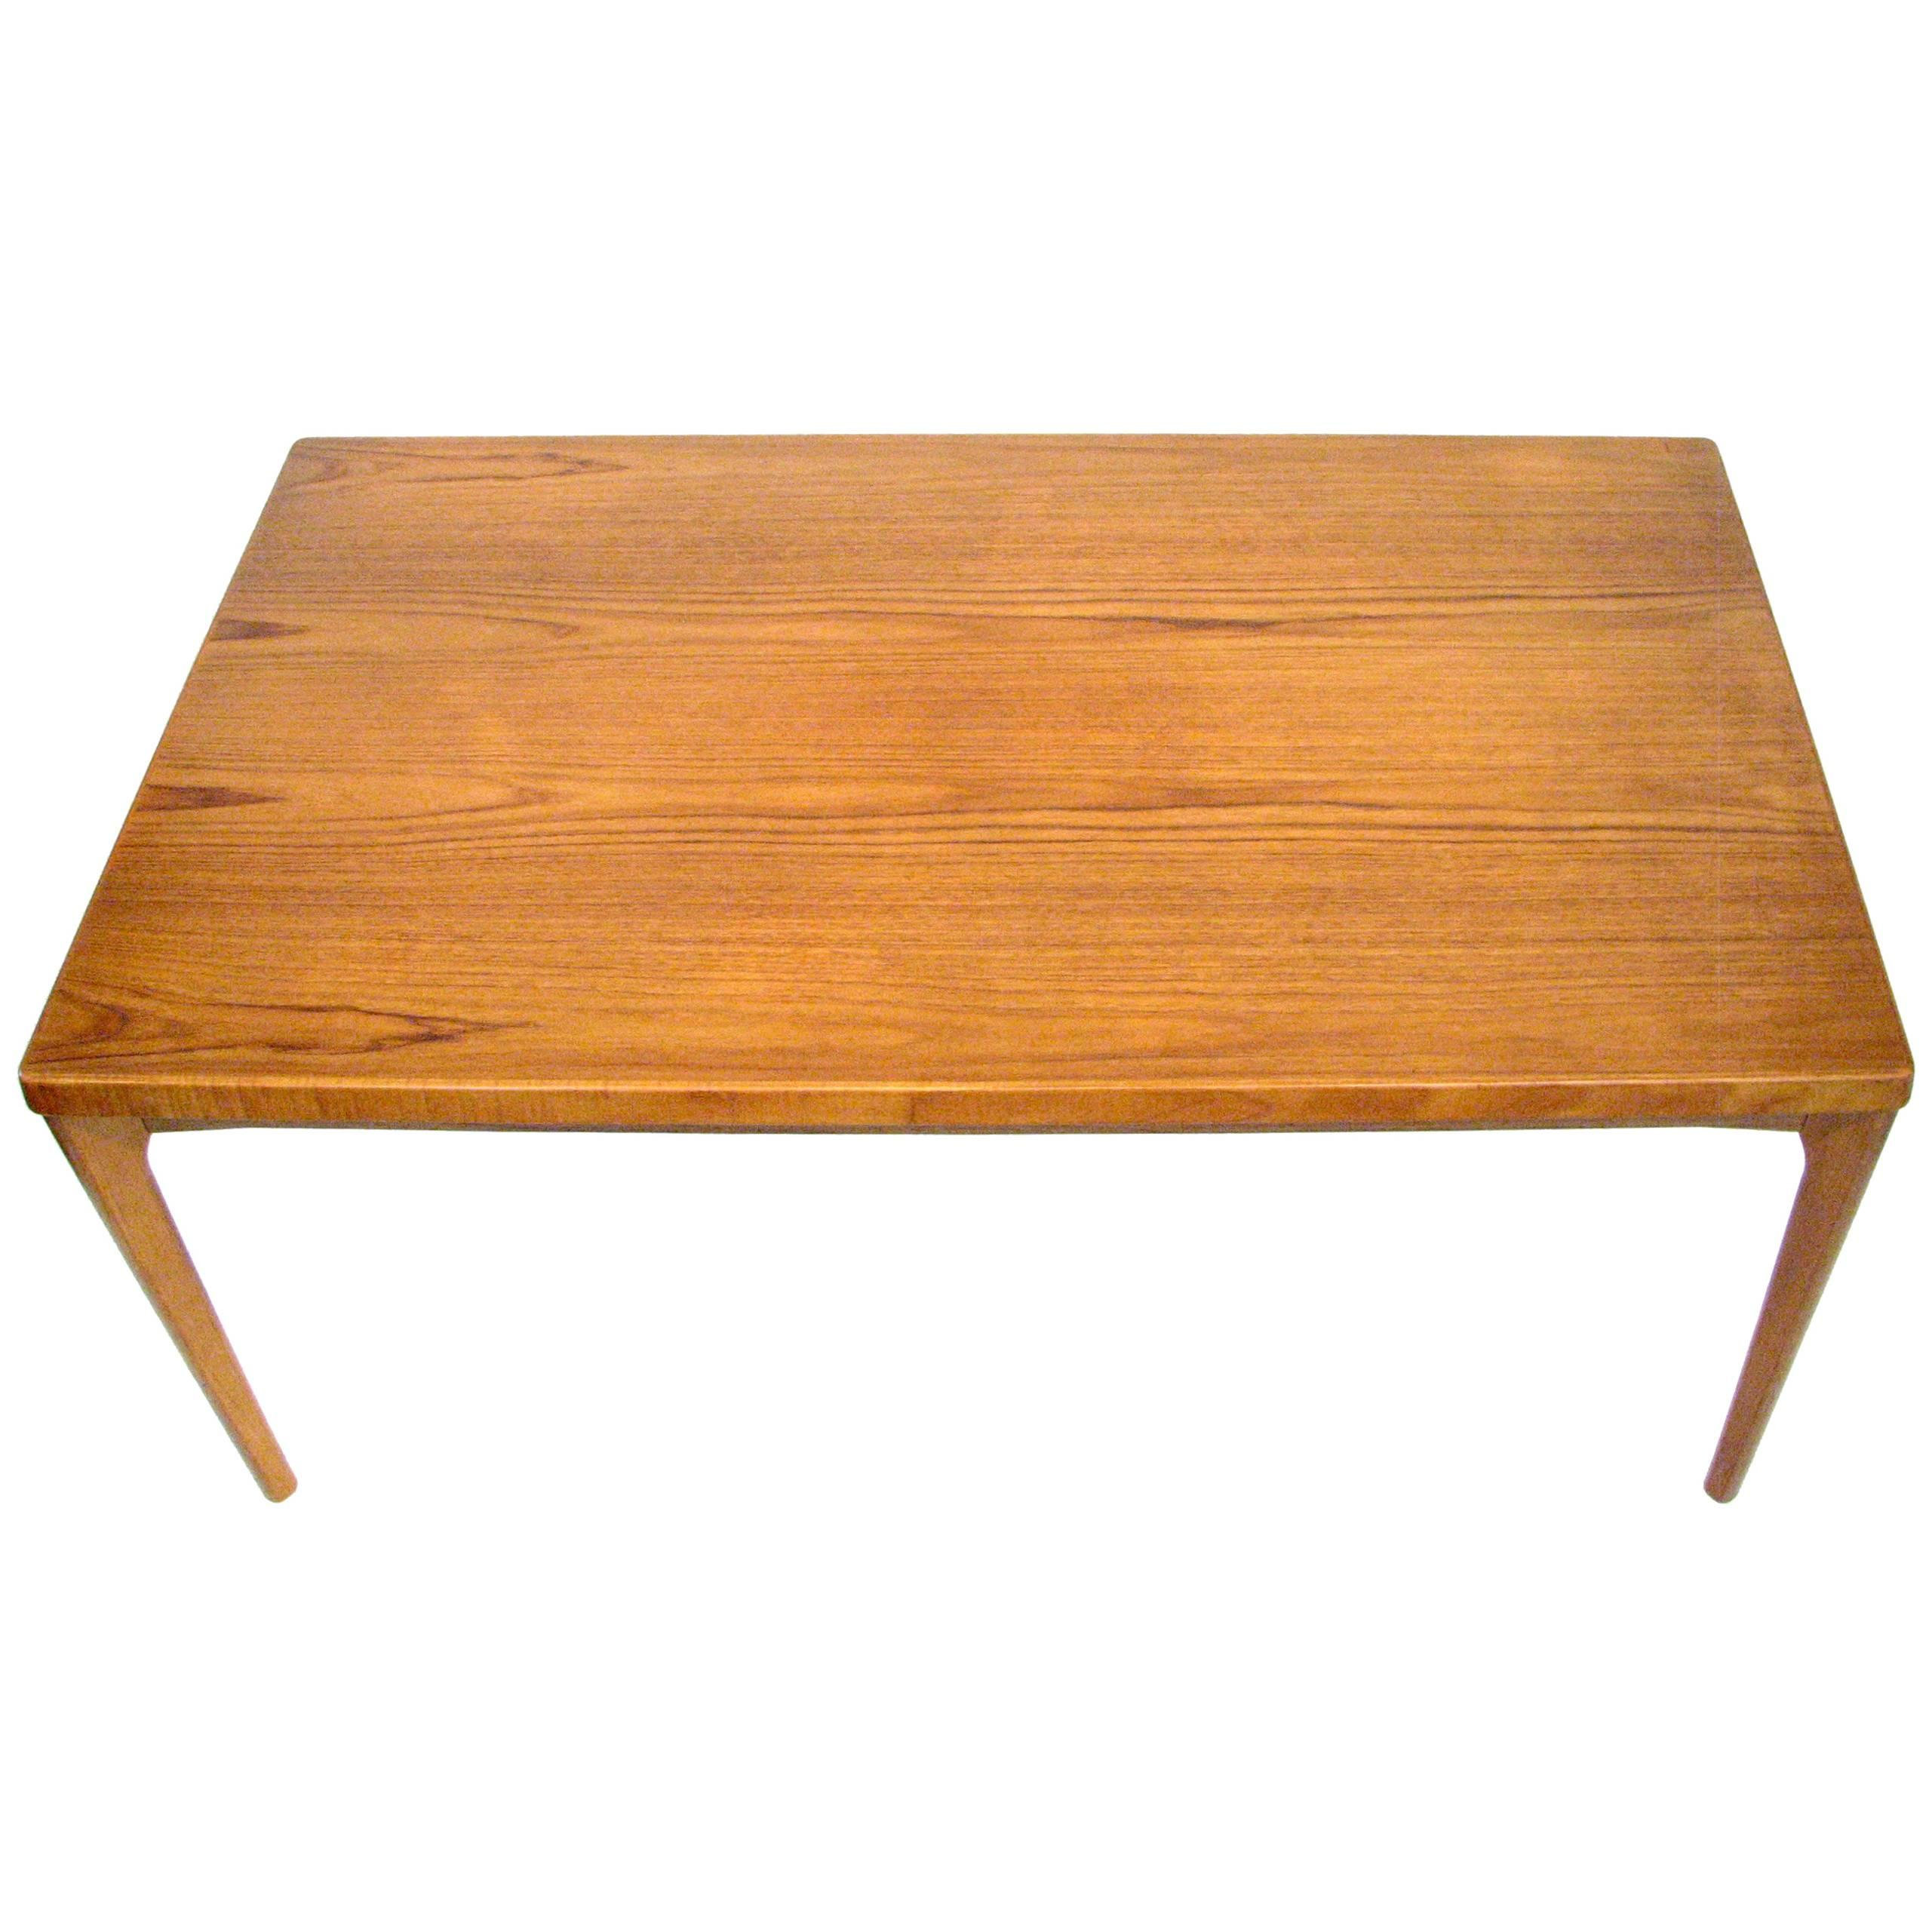 Midcentury Danish Teak Dining Table With Pull Out Leaves By Henning  Kjærnulf For Sale